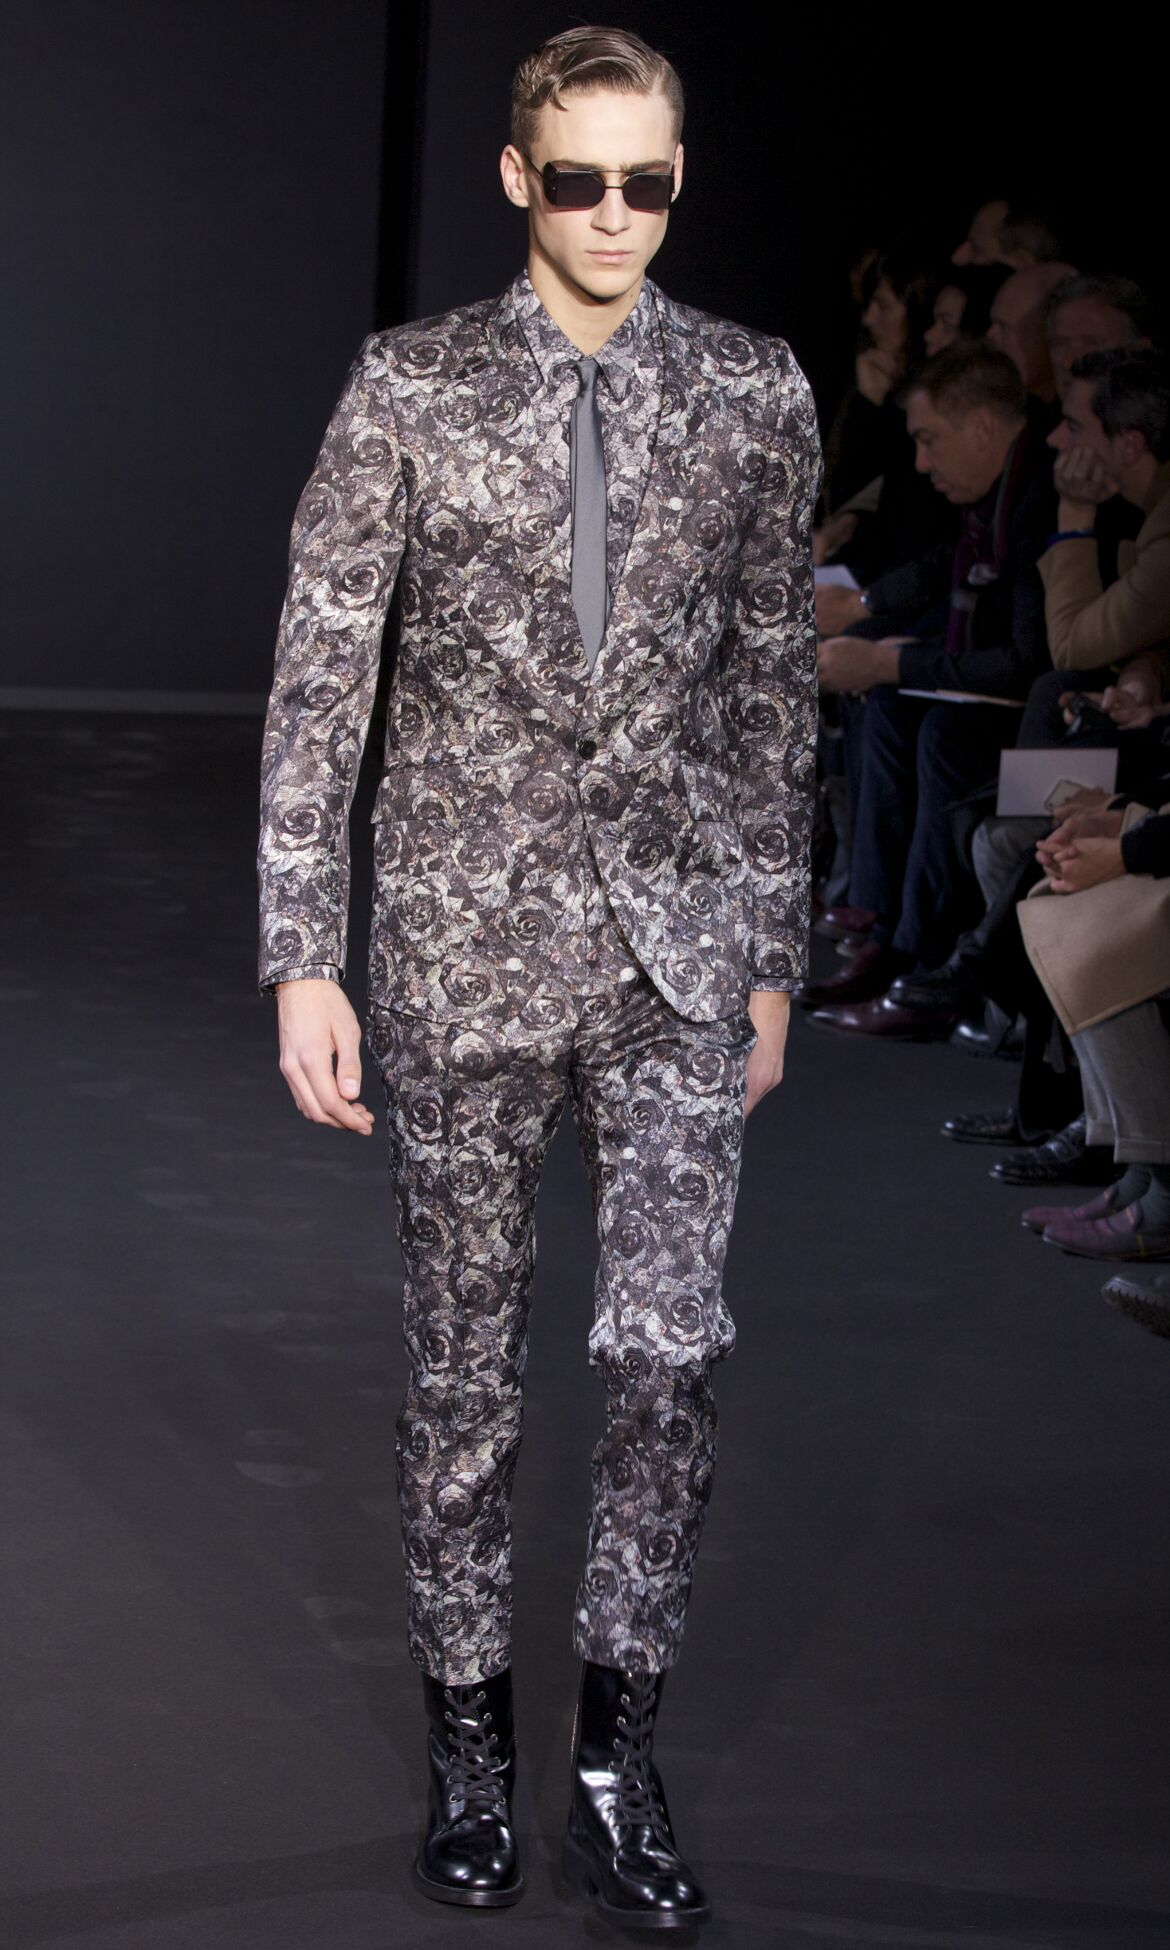 2013 Les Hommes Fall Winter 2014